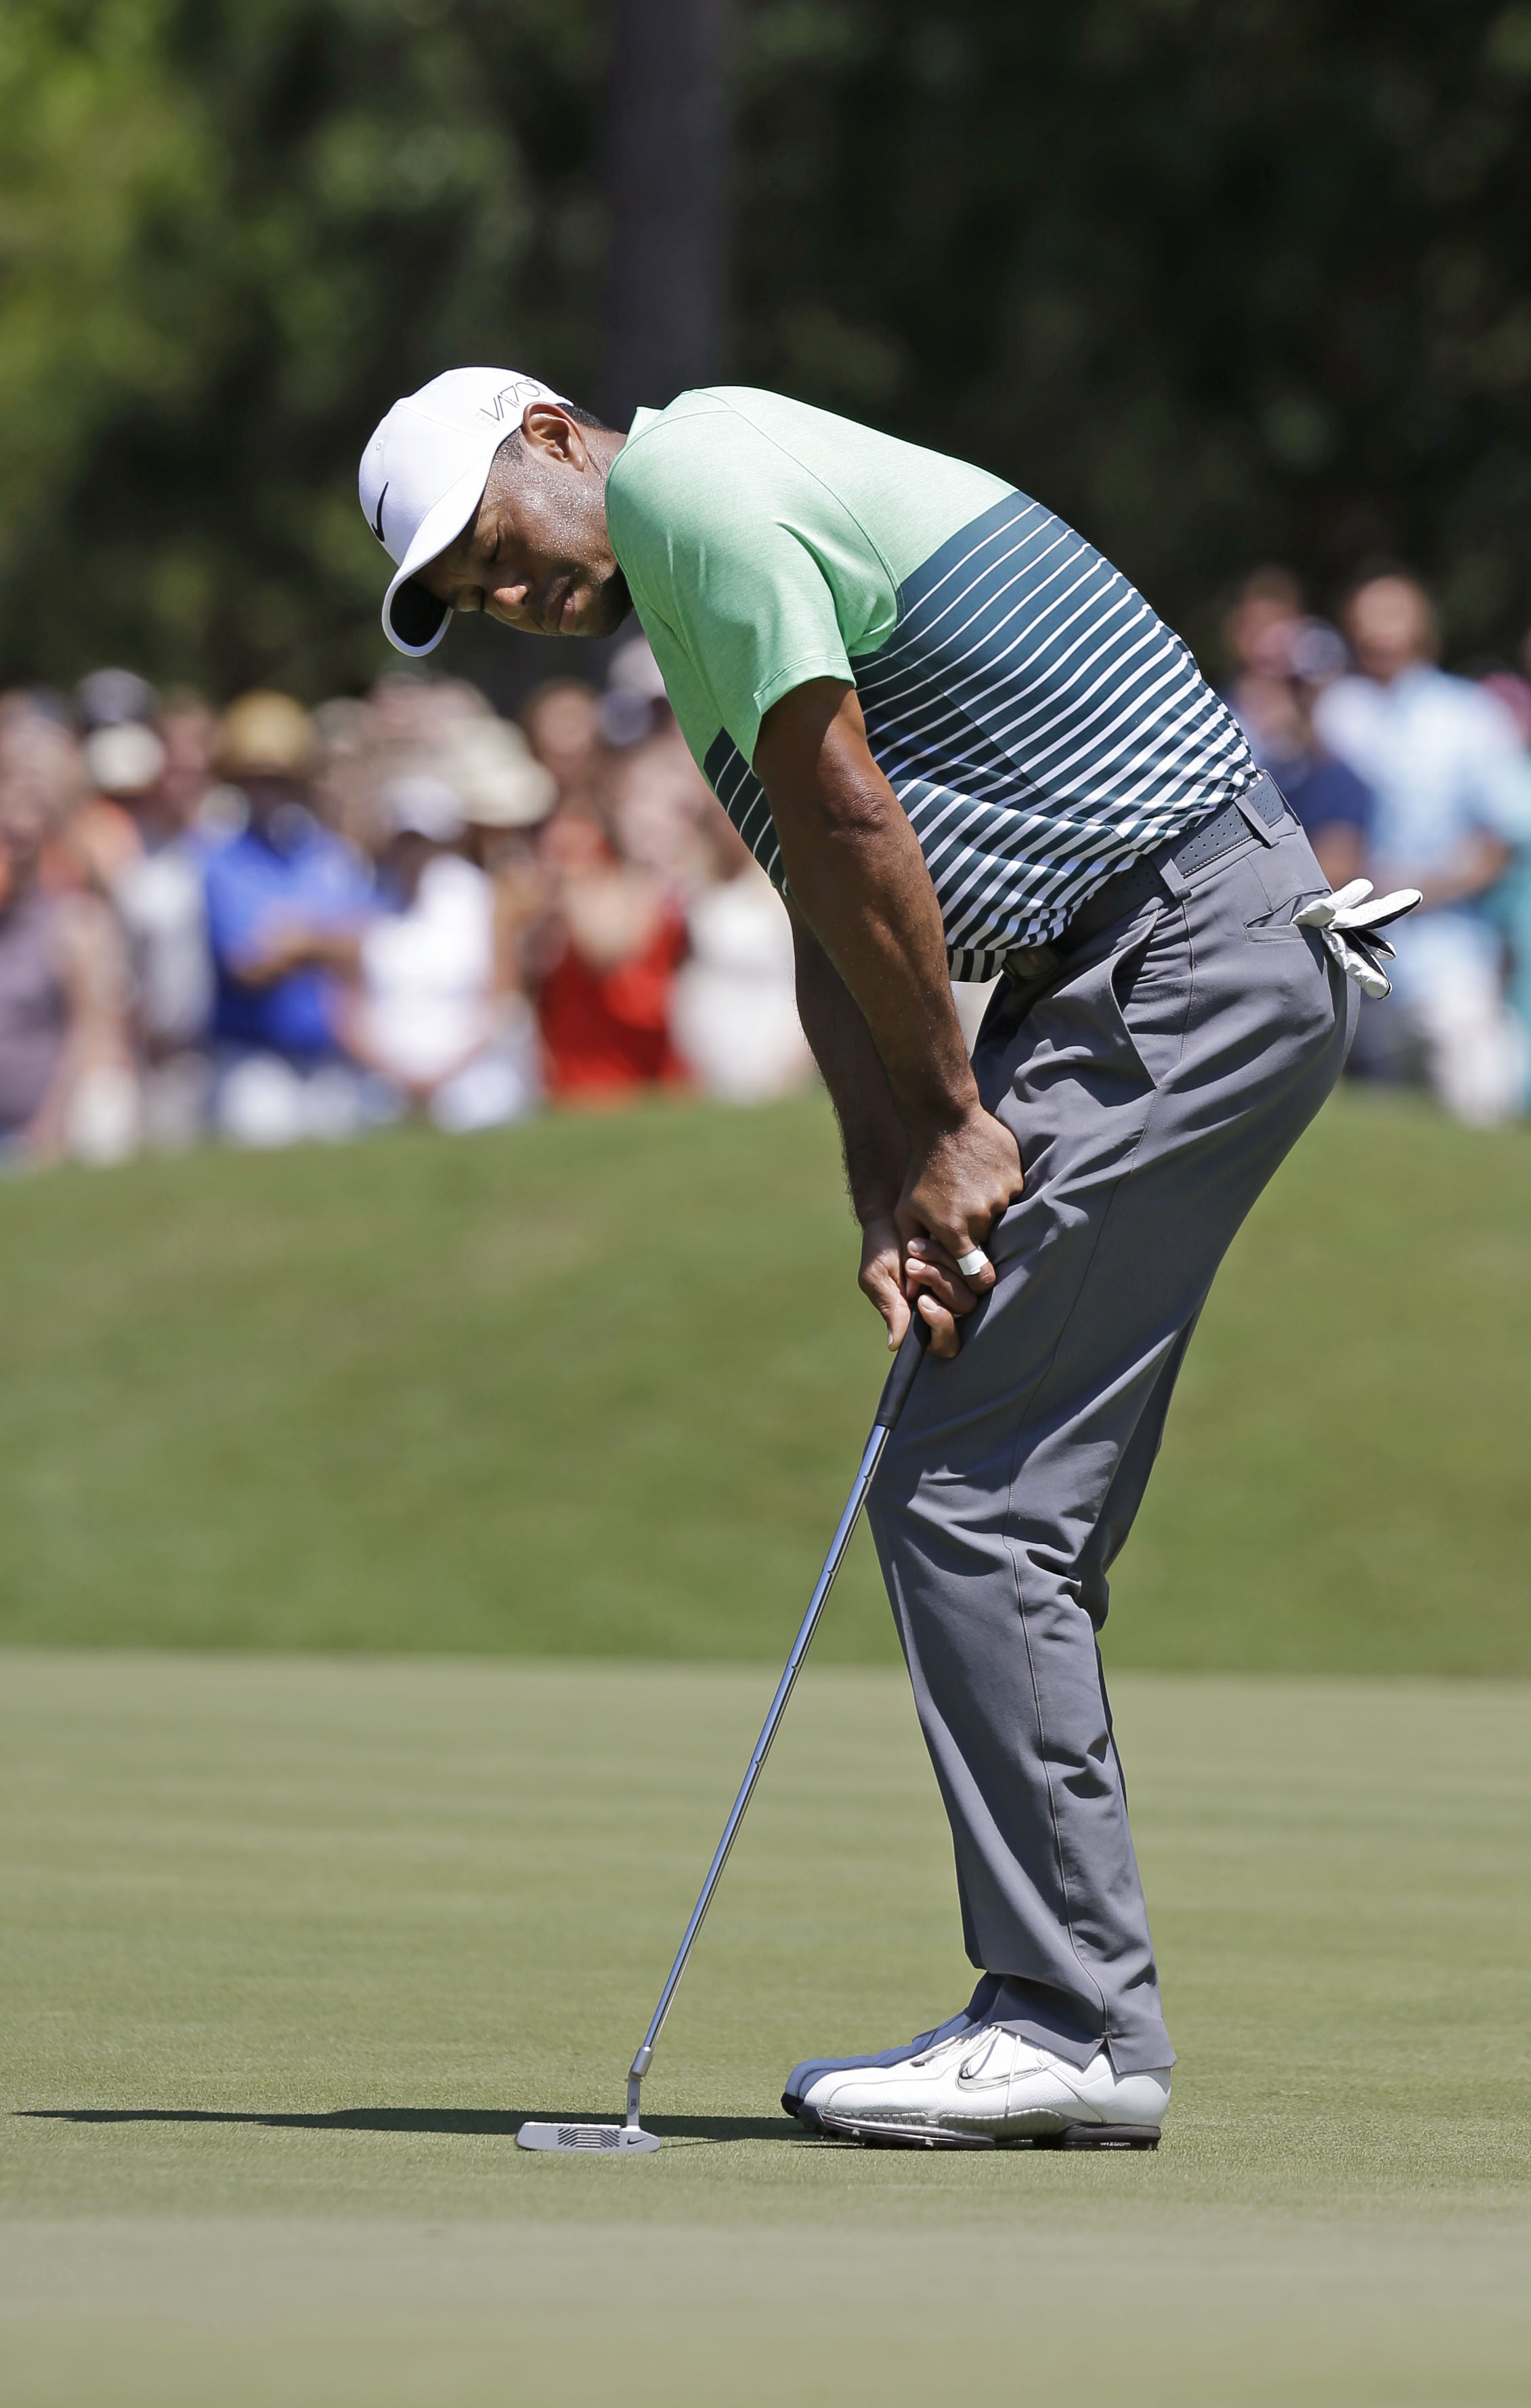 Tiger Woods reacts after missing a birdie putt on the 14th hole during the third round of The Players Championship golf tournament Saturday, May 9, 2015, in Ponte Vedra Beach, Fla. (AP Photo/John Raoux)